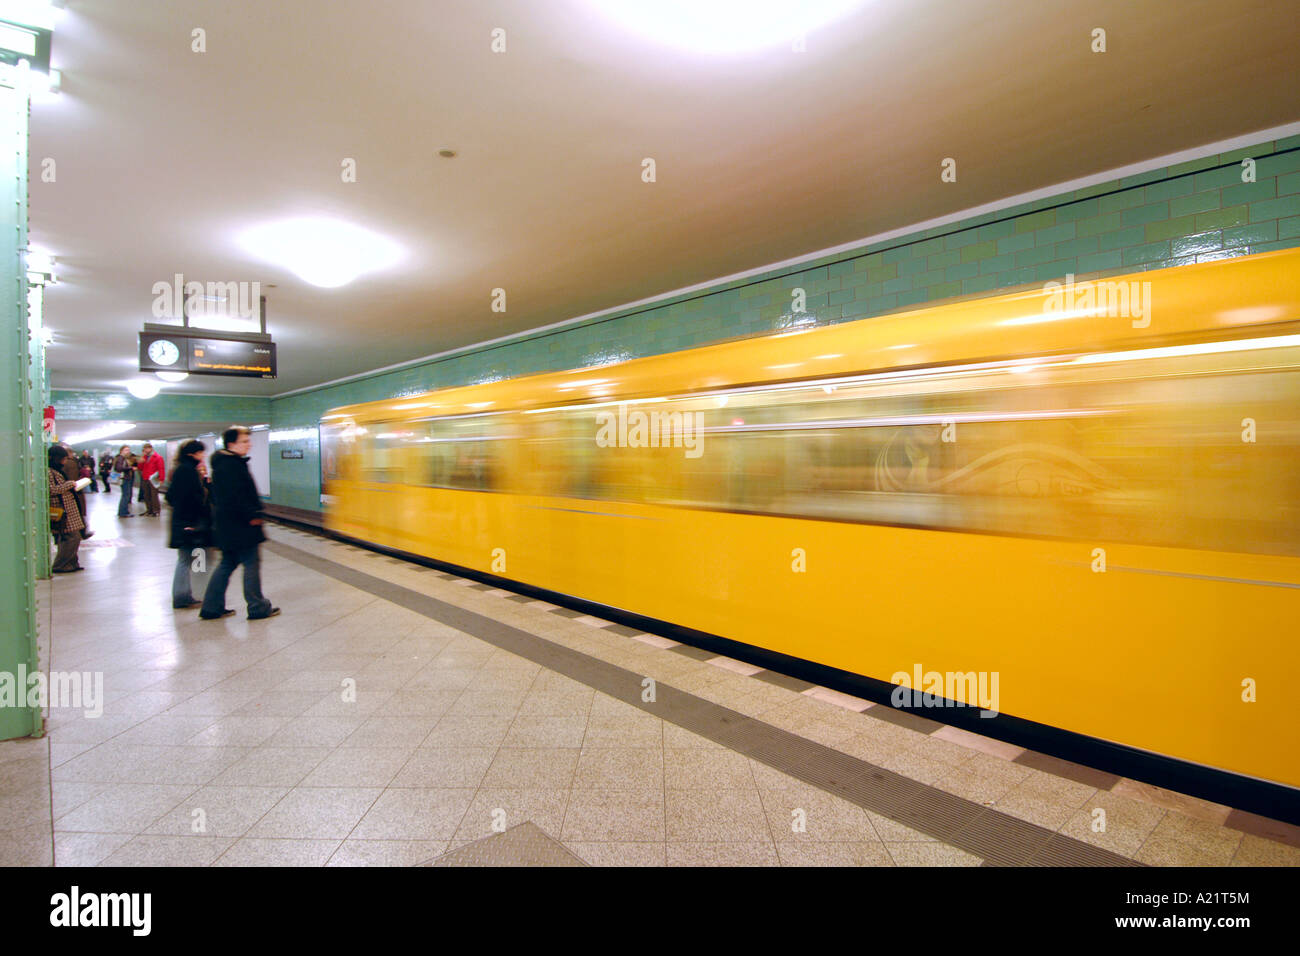 The Alexanderplatz U bahn station platform in East Berlin. - Stock Image